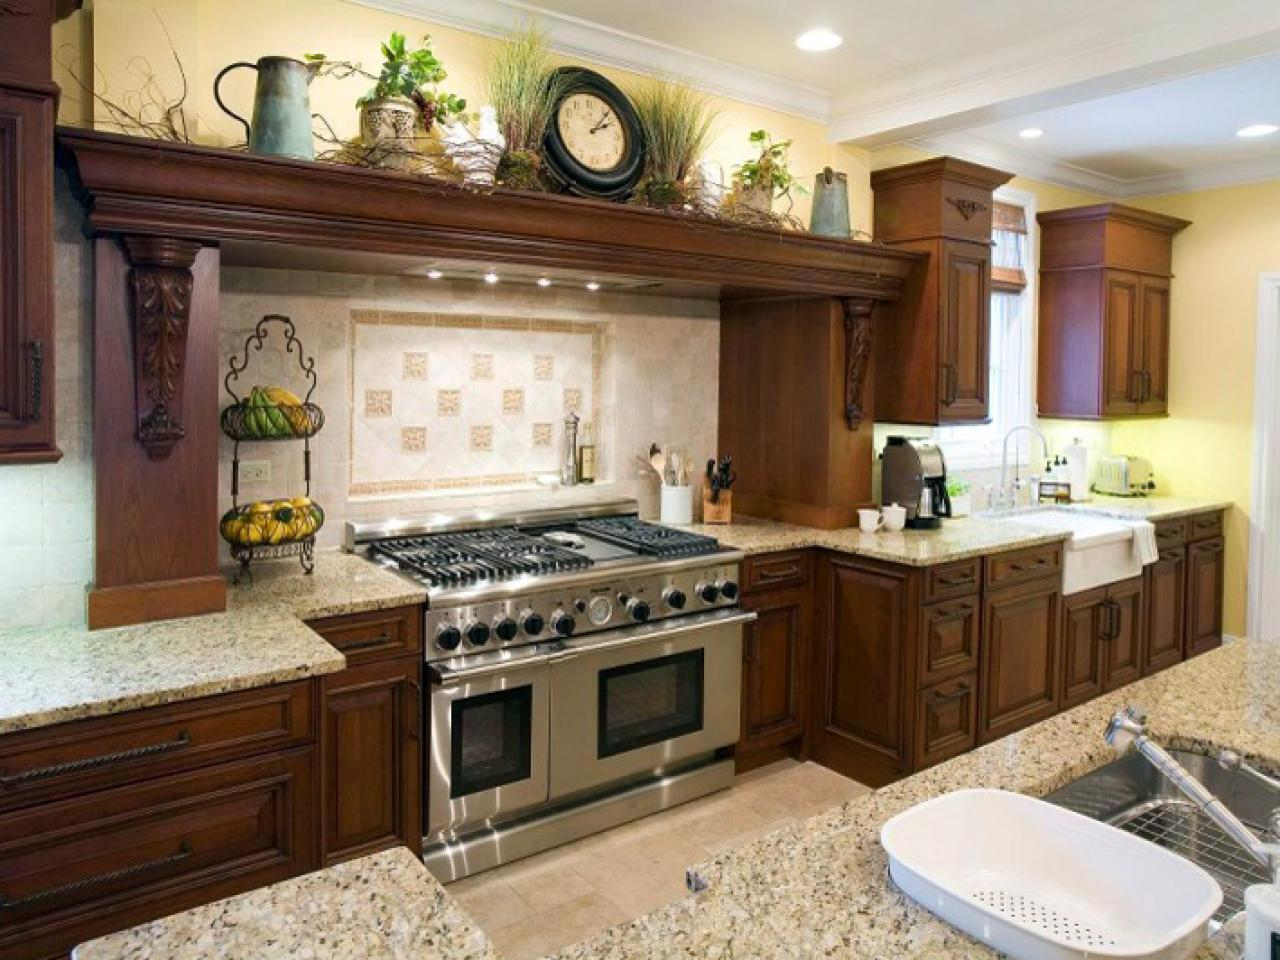 Mediterranean style kitchens kitchen designs choose kitchen layouts remodeling materials - Kitchen styles and designs ...